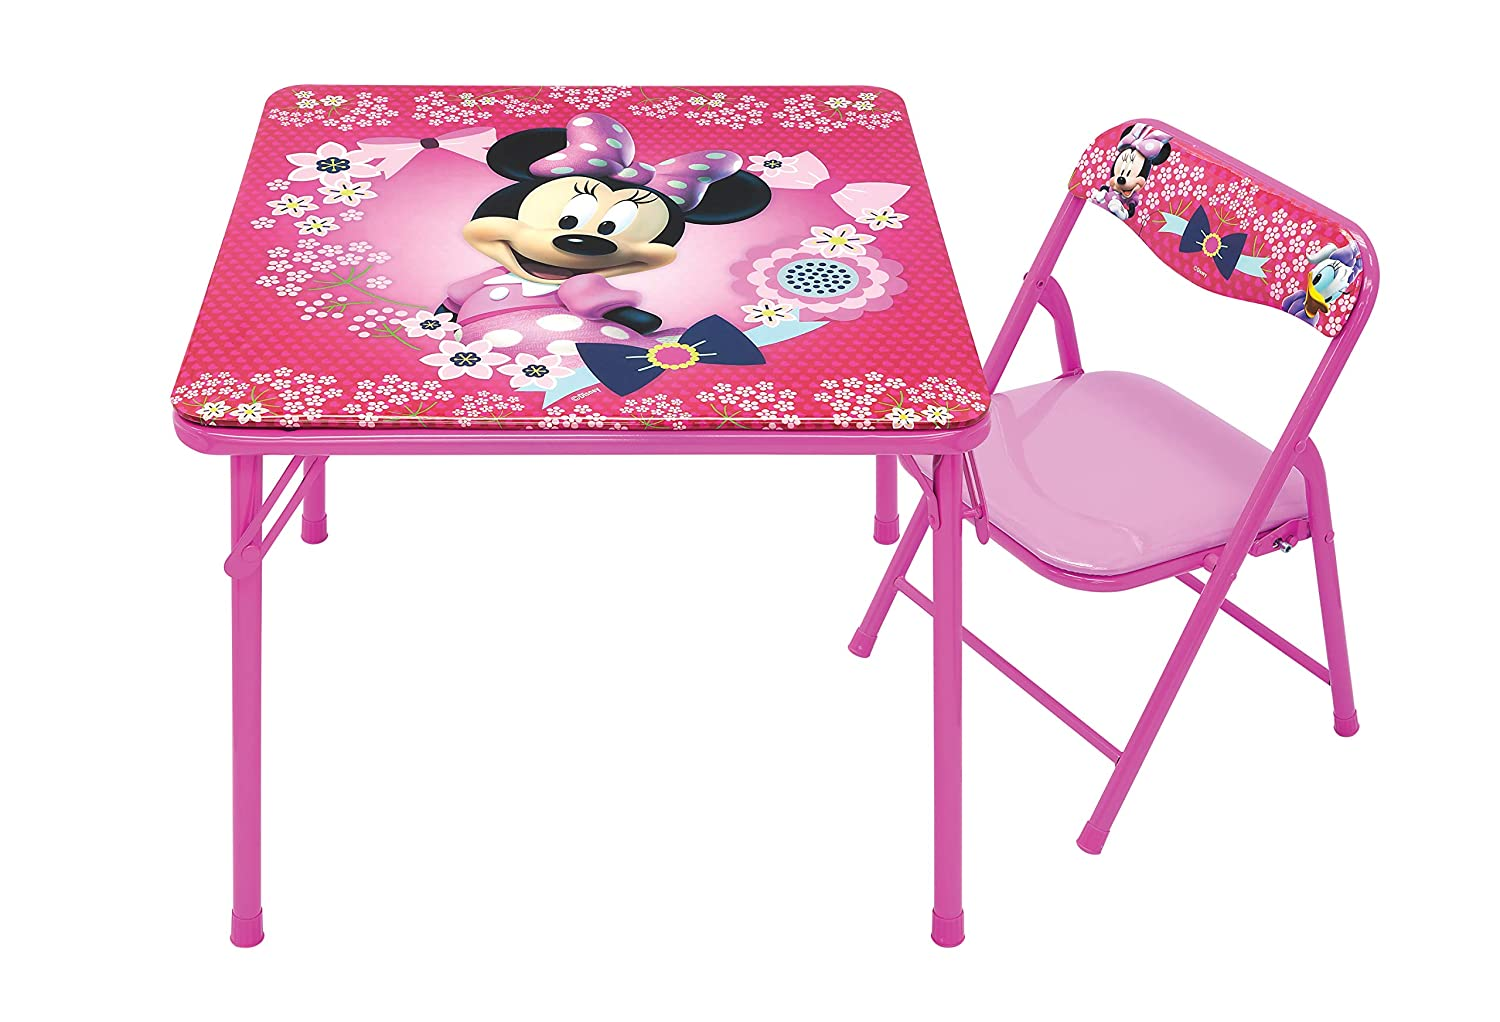 Minnie Mouse Blossoms & Bows Jr. Activity Table Set with 1 Chair Activity Table Set Moose Mountain - Domestic 95579